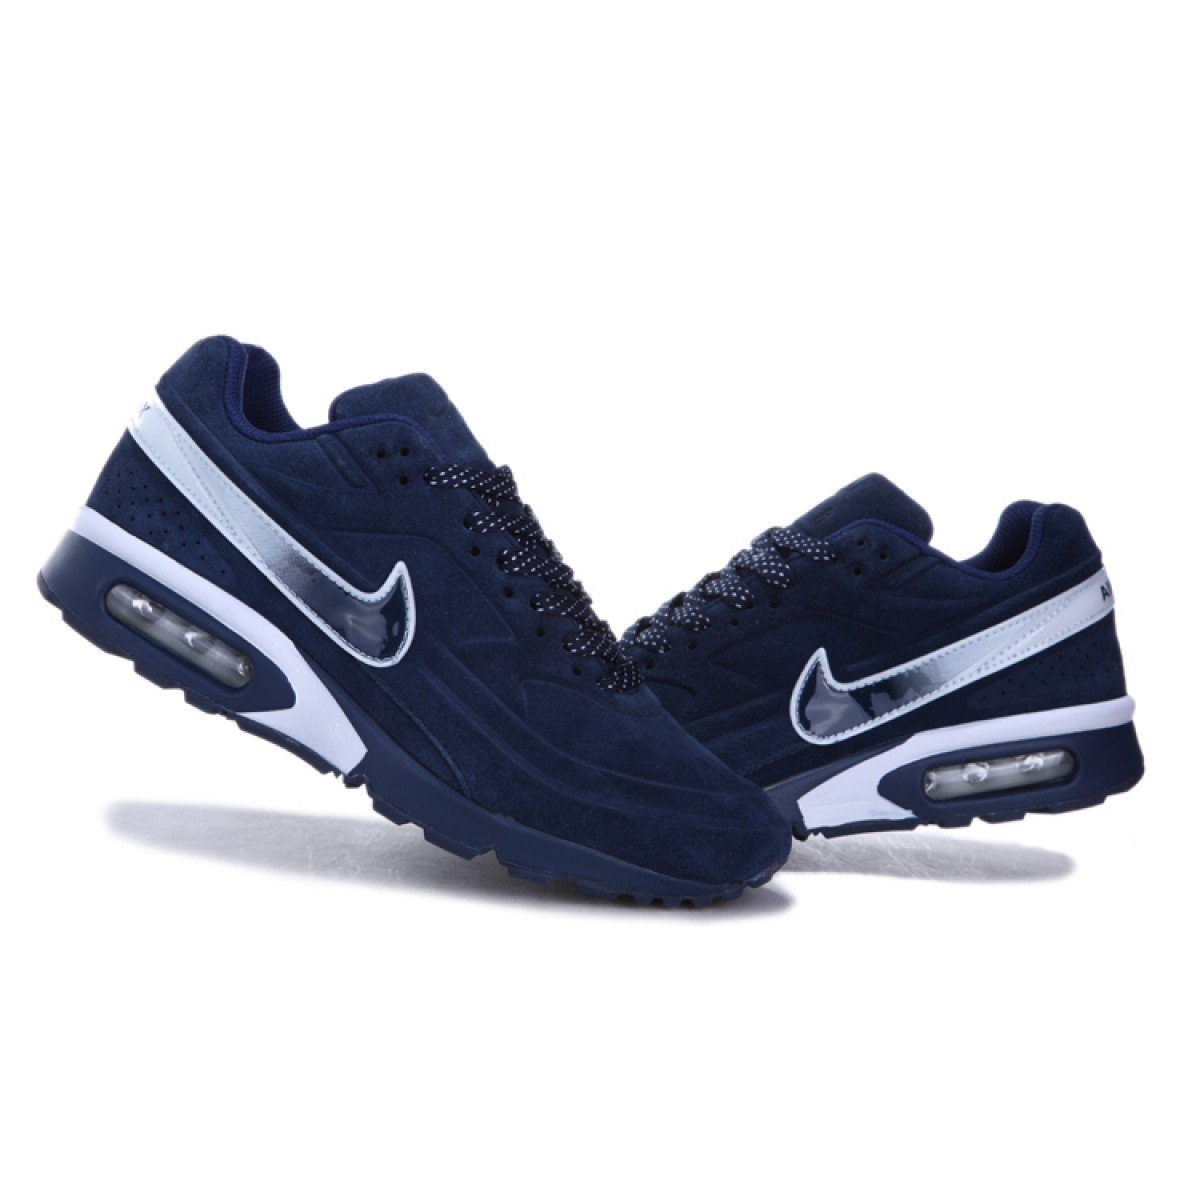 nouvelle nike air max homme